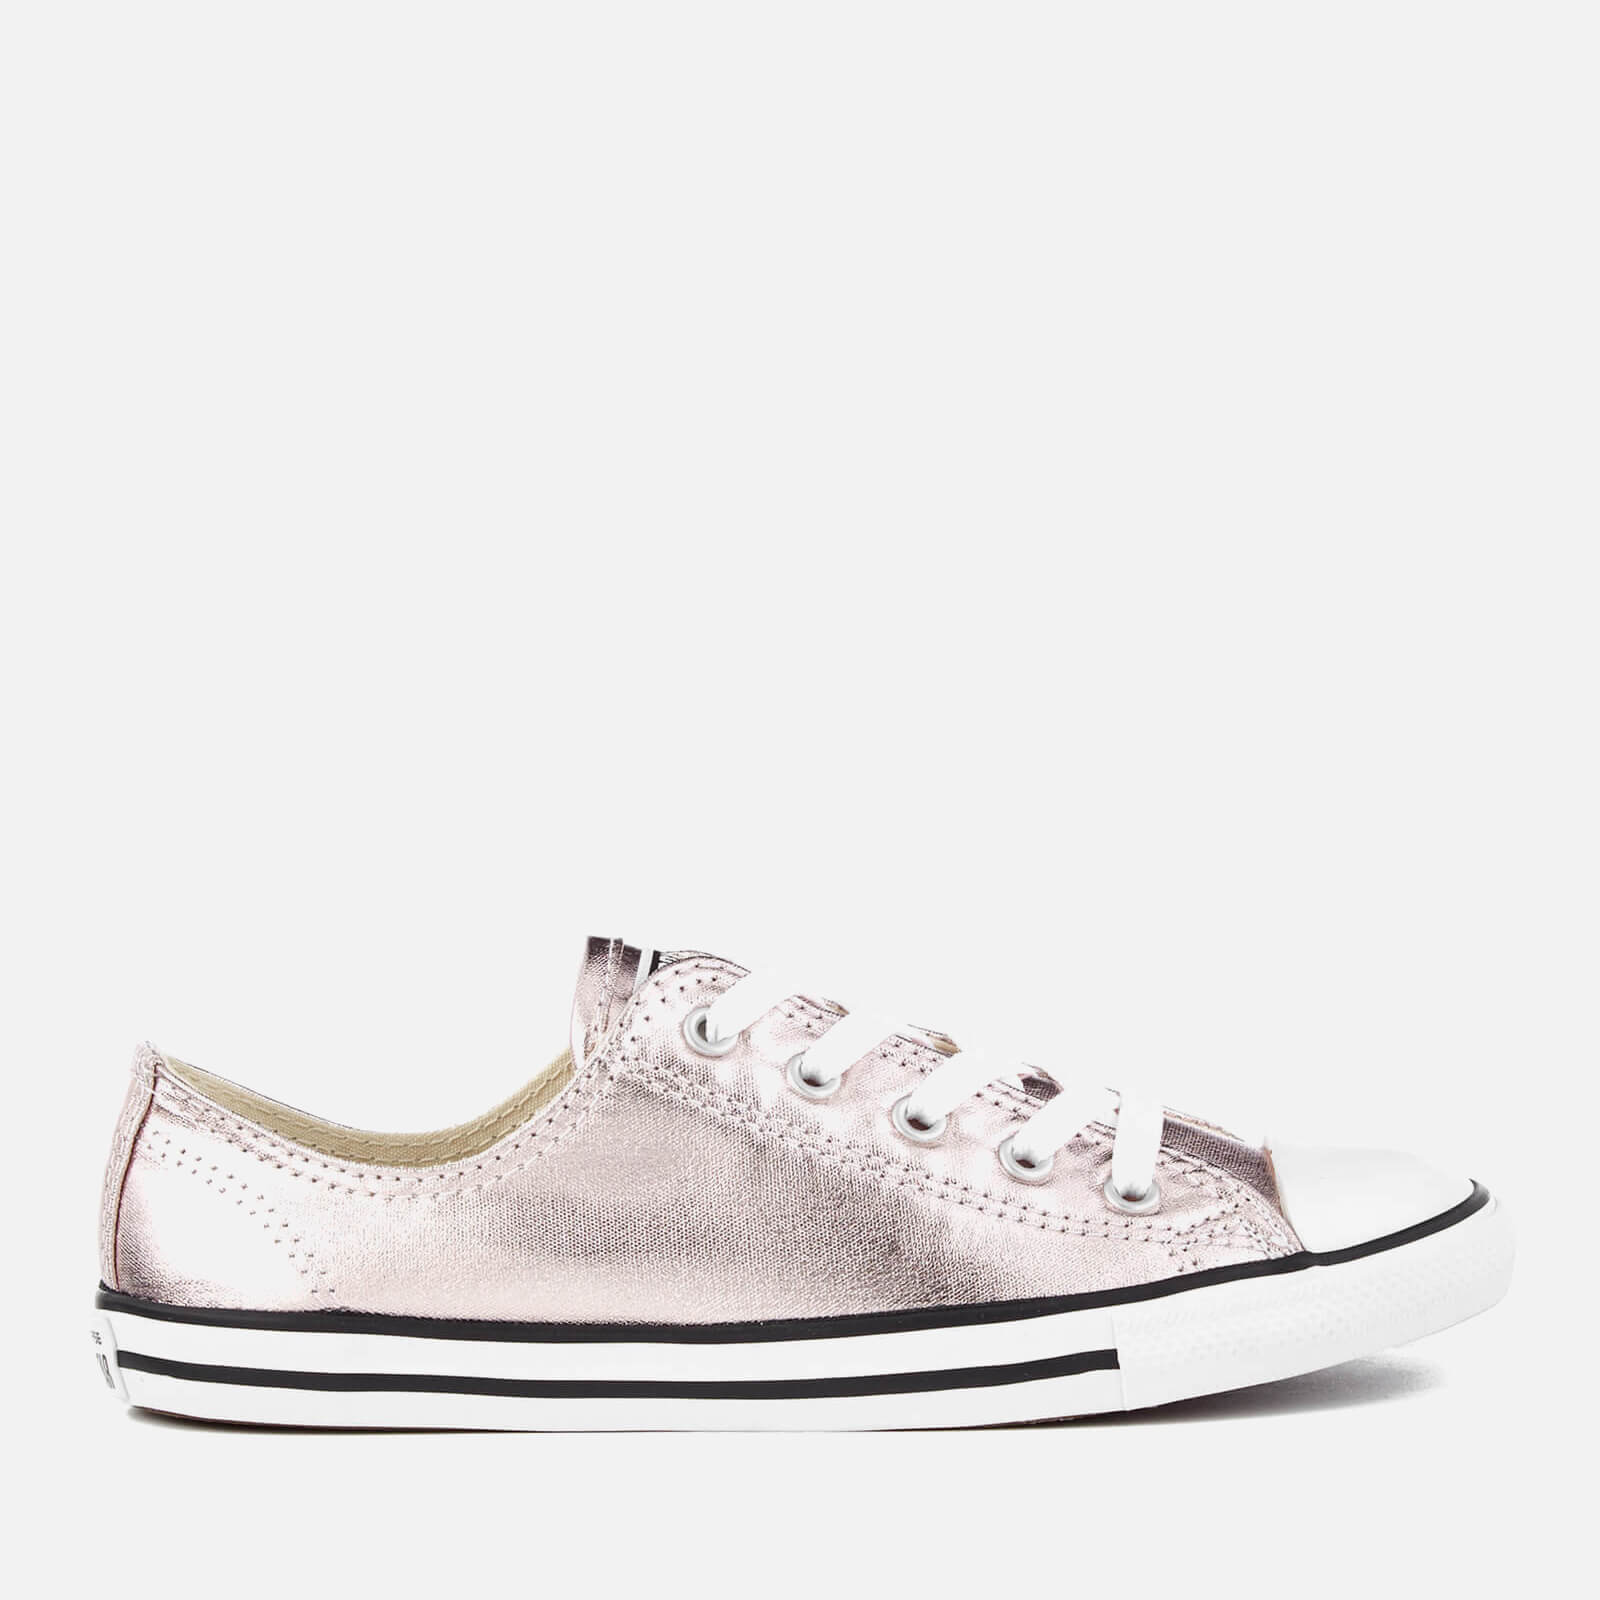 6940112bfef7cf ... Converse Women s Chuck Taylor All Star Dainty Ox Trainers - Rose  Quartz Black White